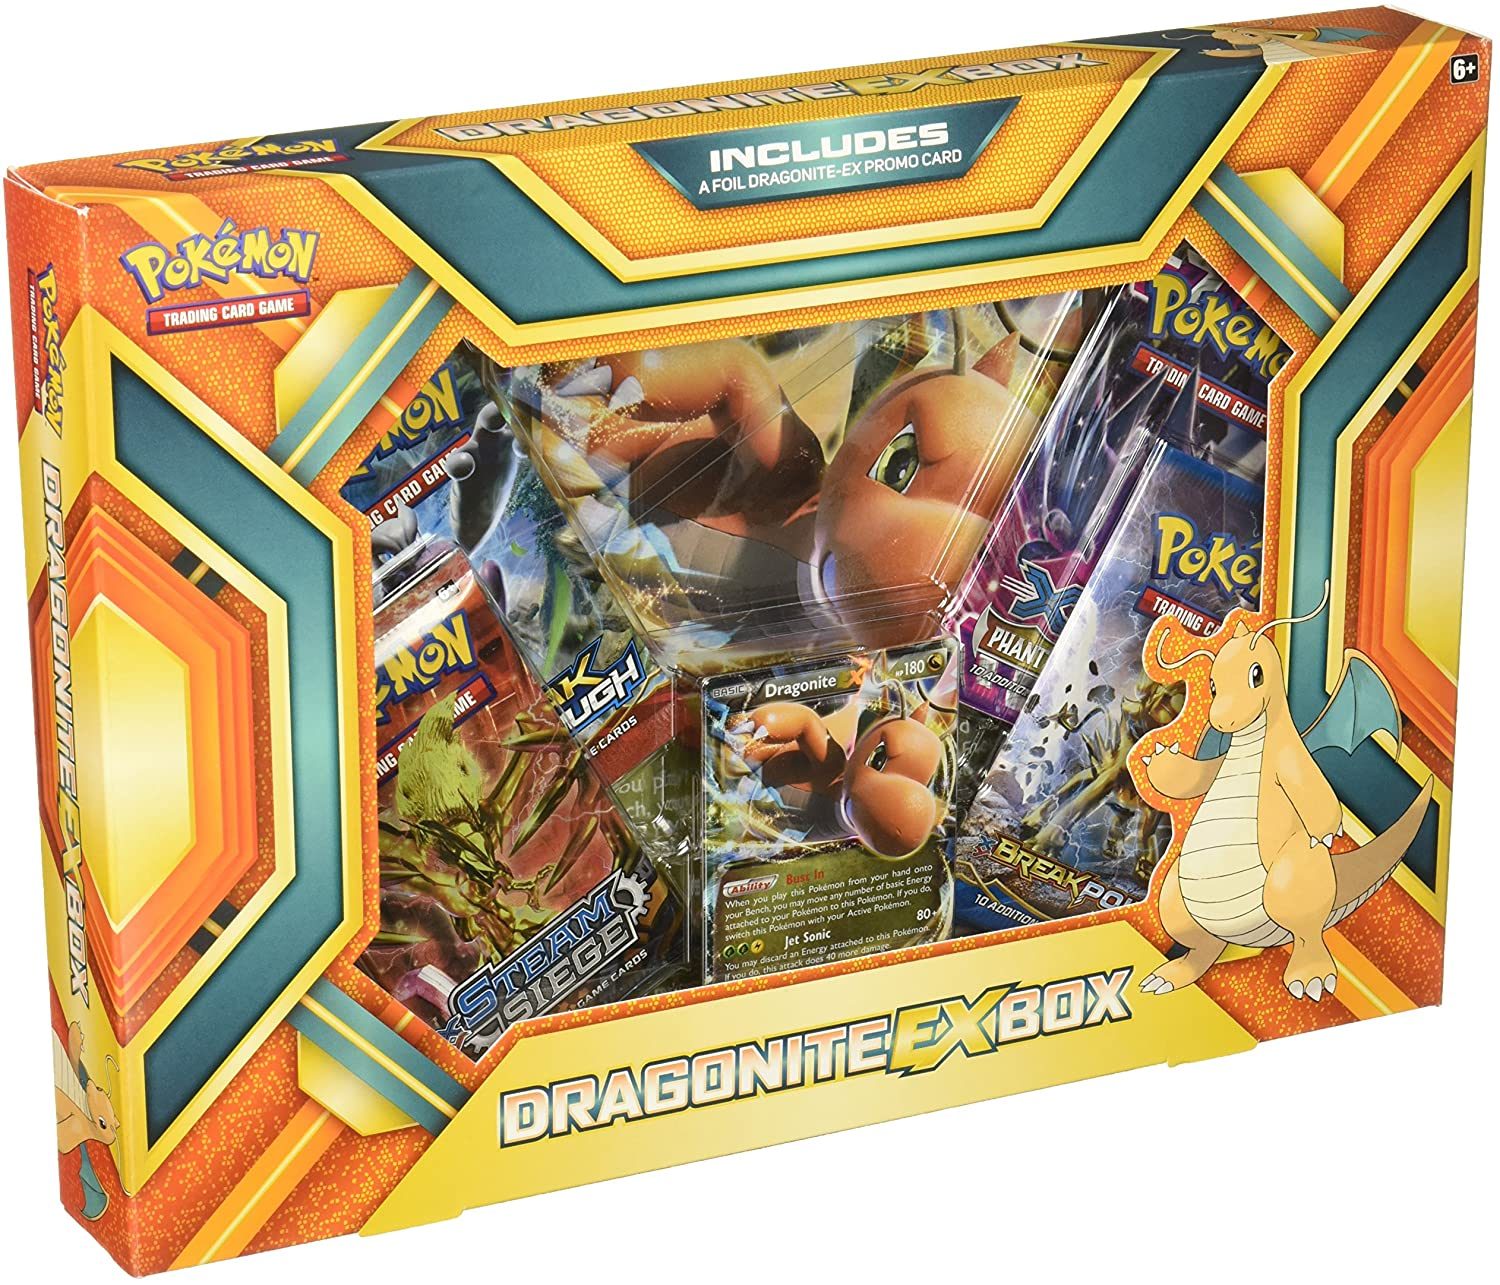 Speelgoed Pokemon POC424 Dragonite Ex Box - Caja de Cartas ...